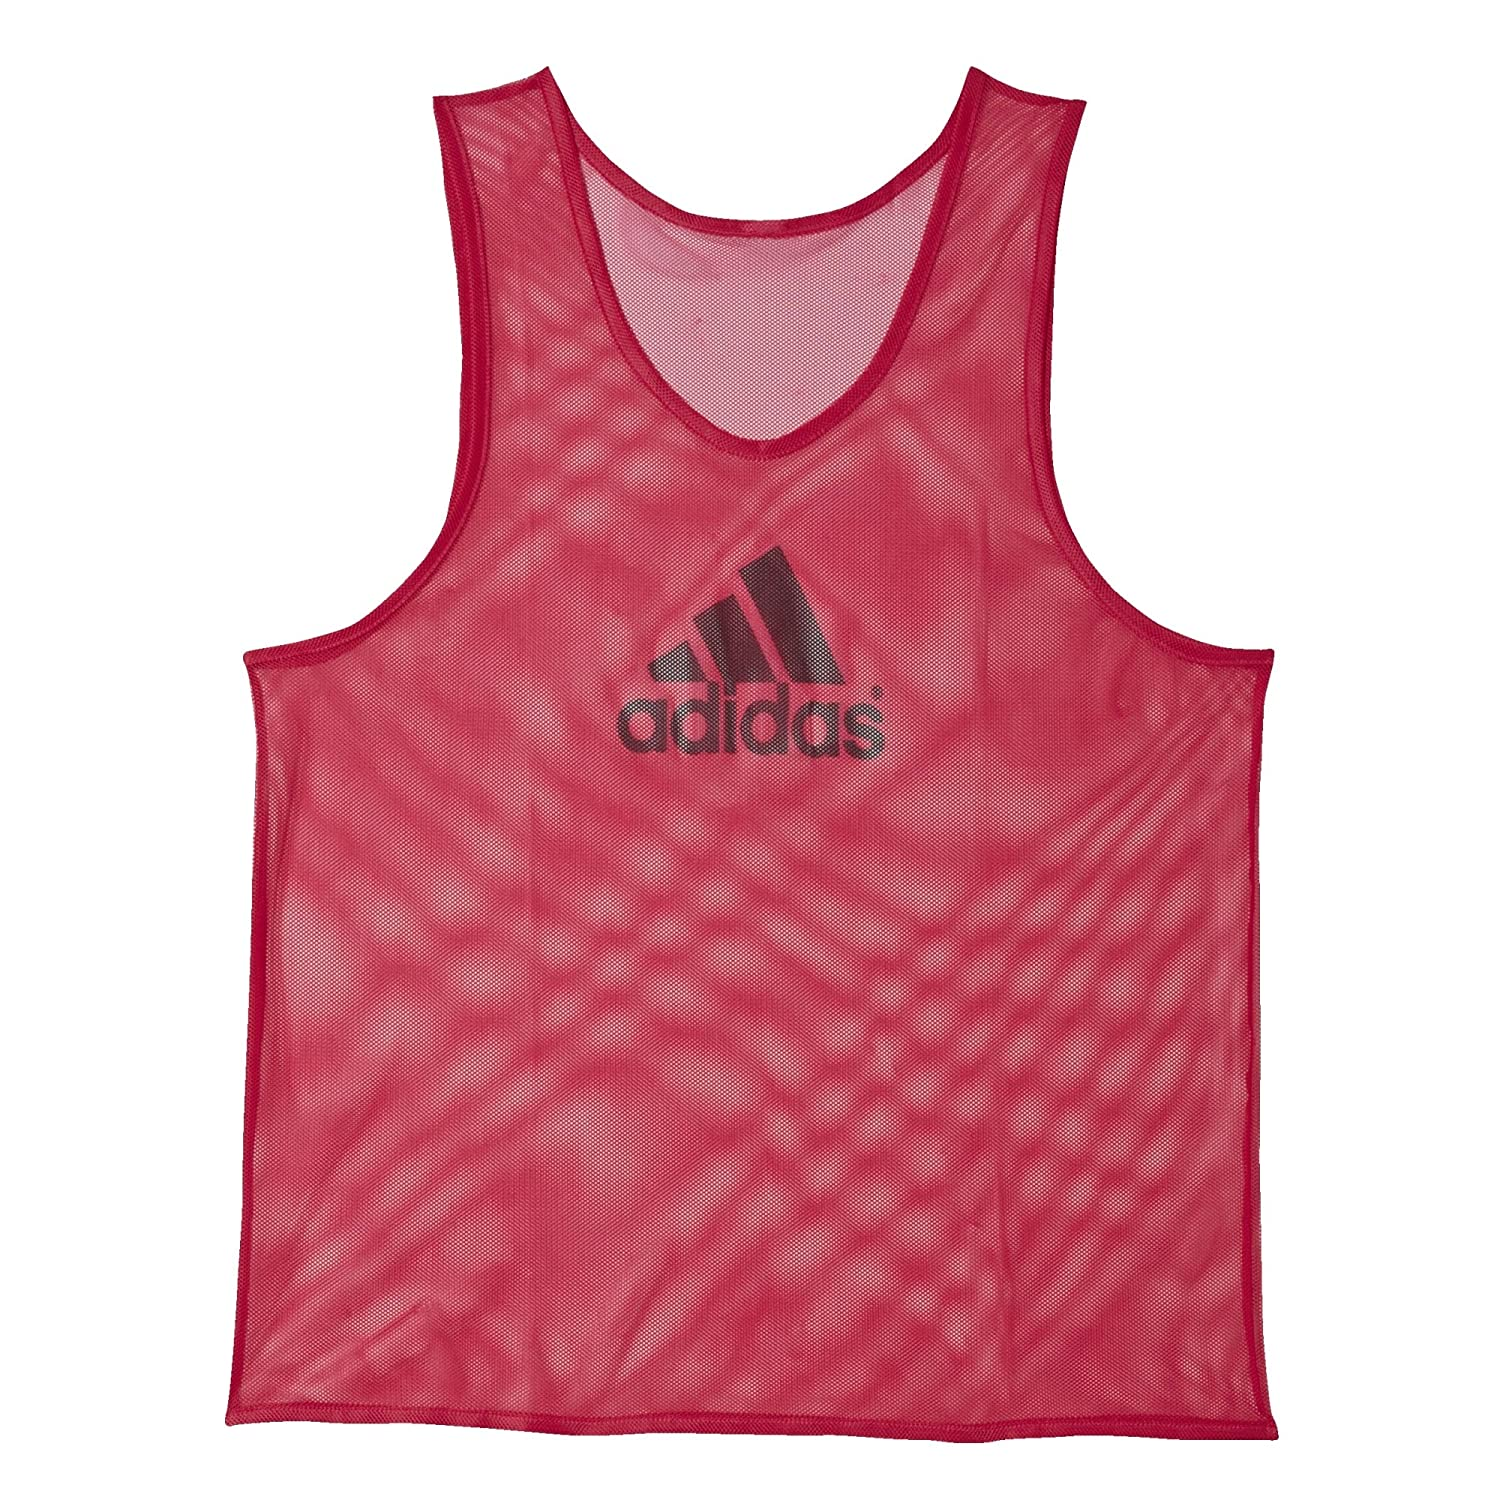 adidas Men's Training Bib 14 Tee